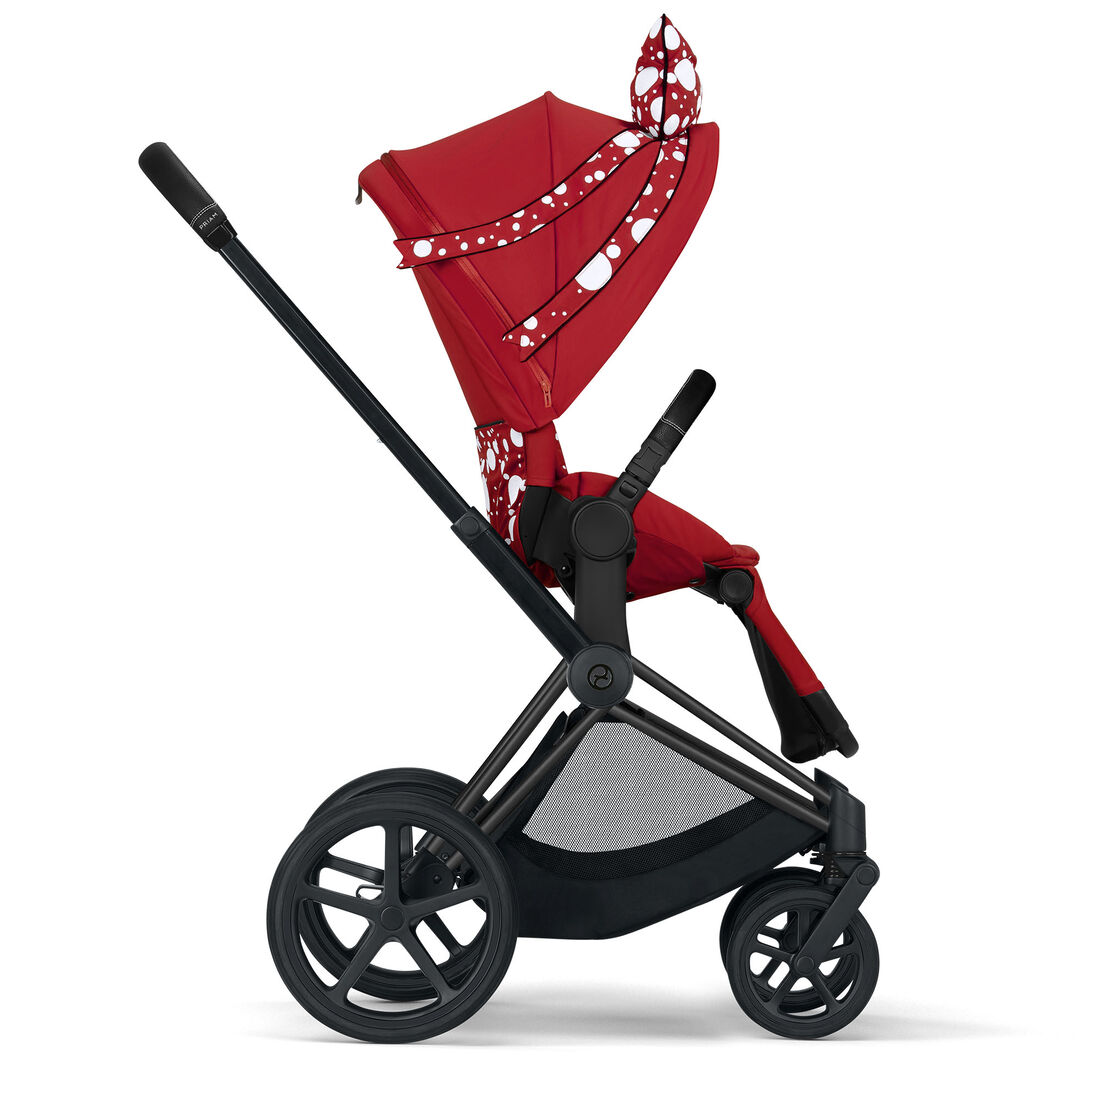 CYBEX Priam Seat Pack - Petticoat Red in Petticoat Red large image number 3